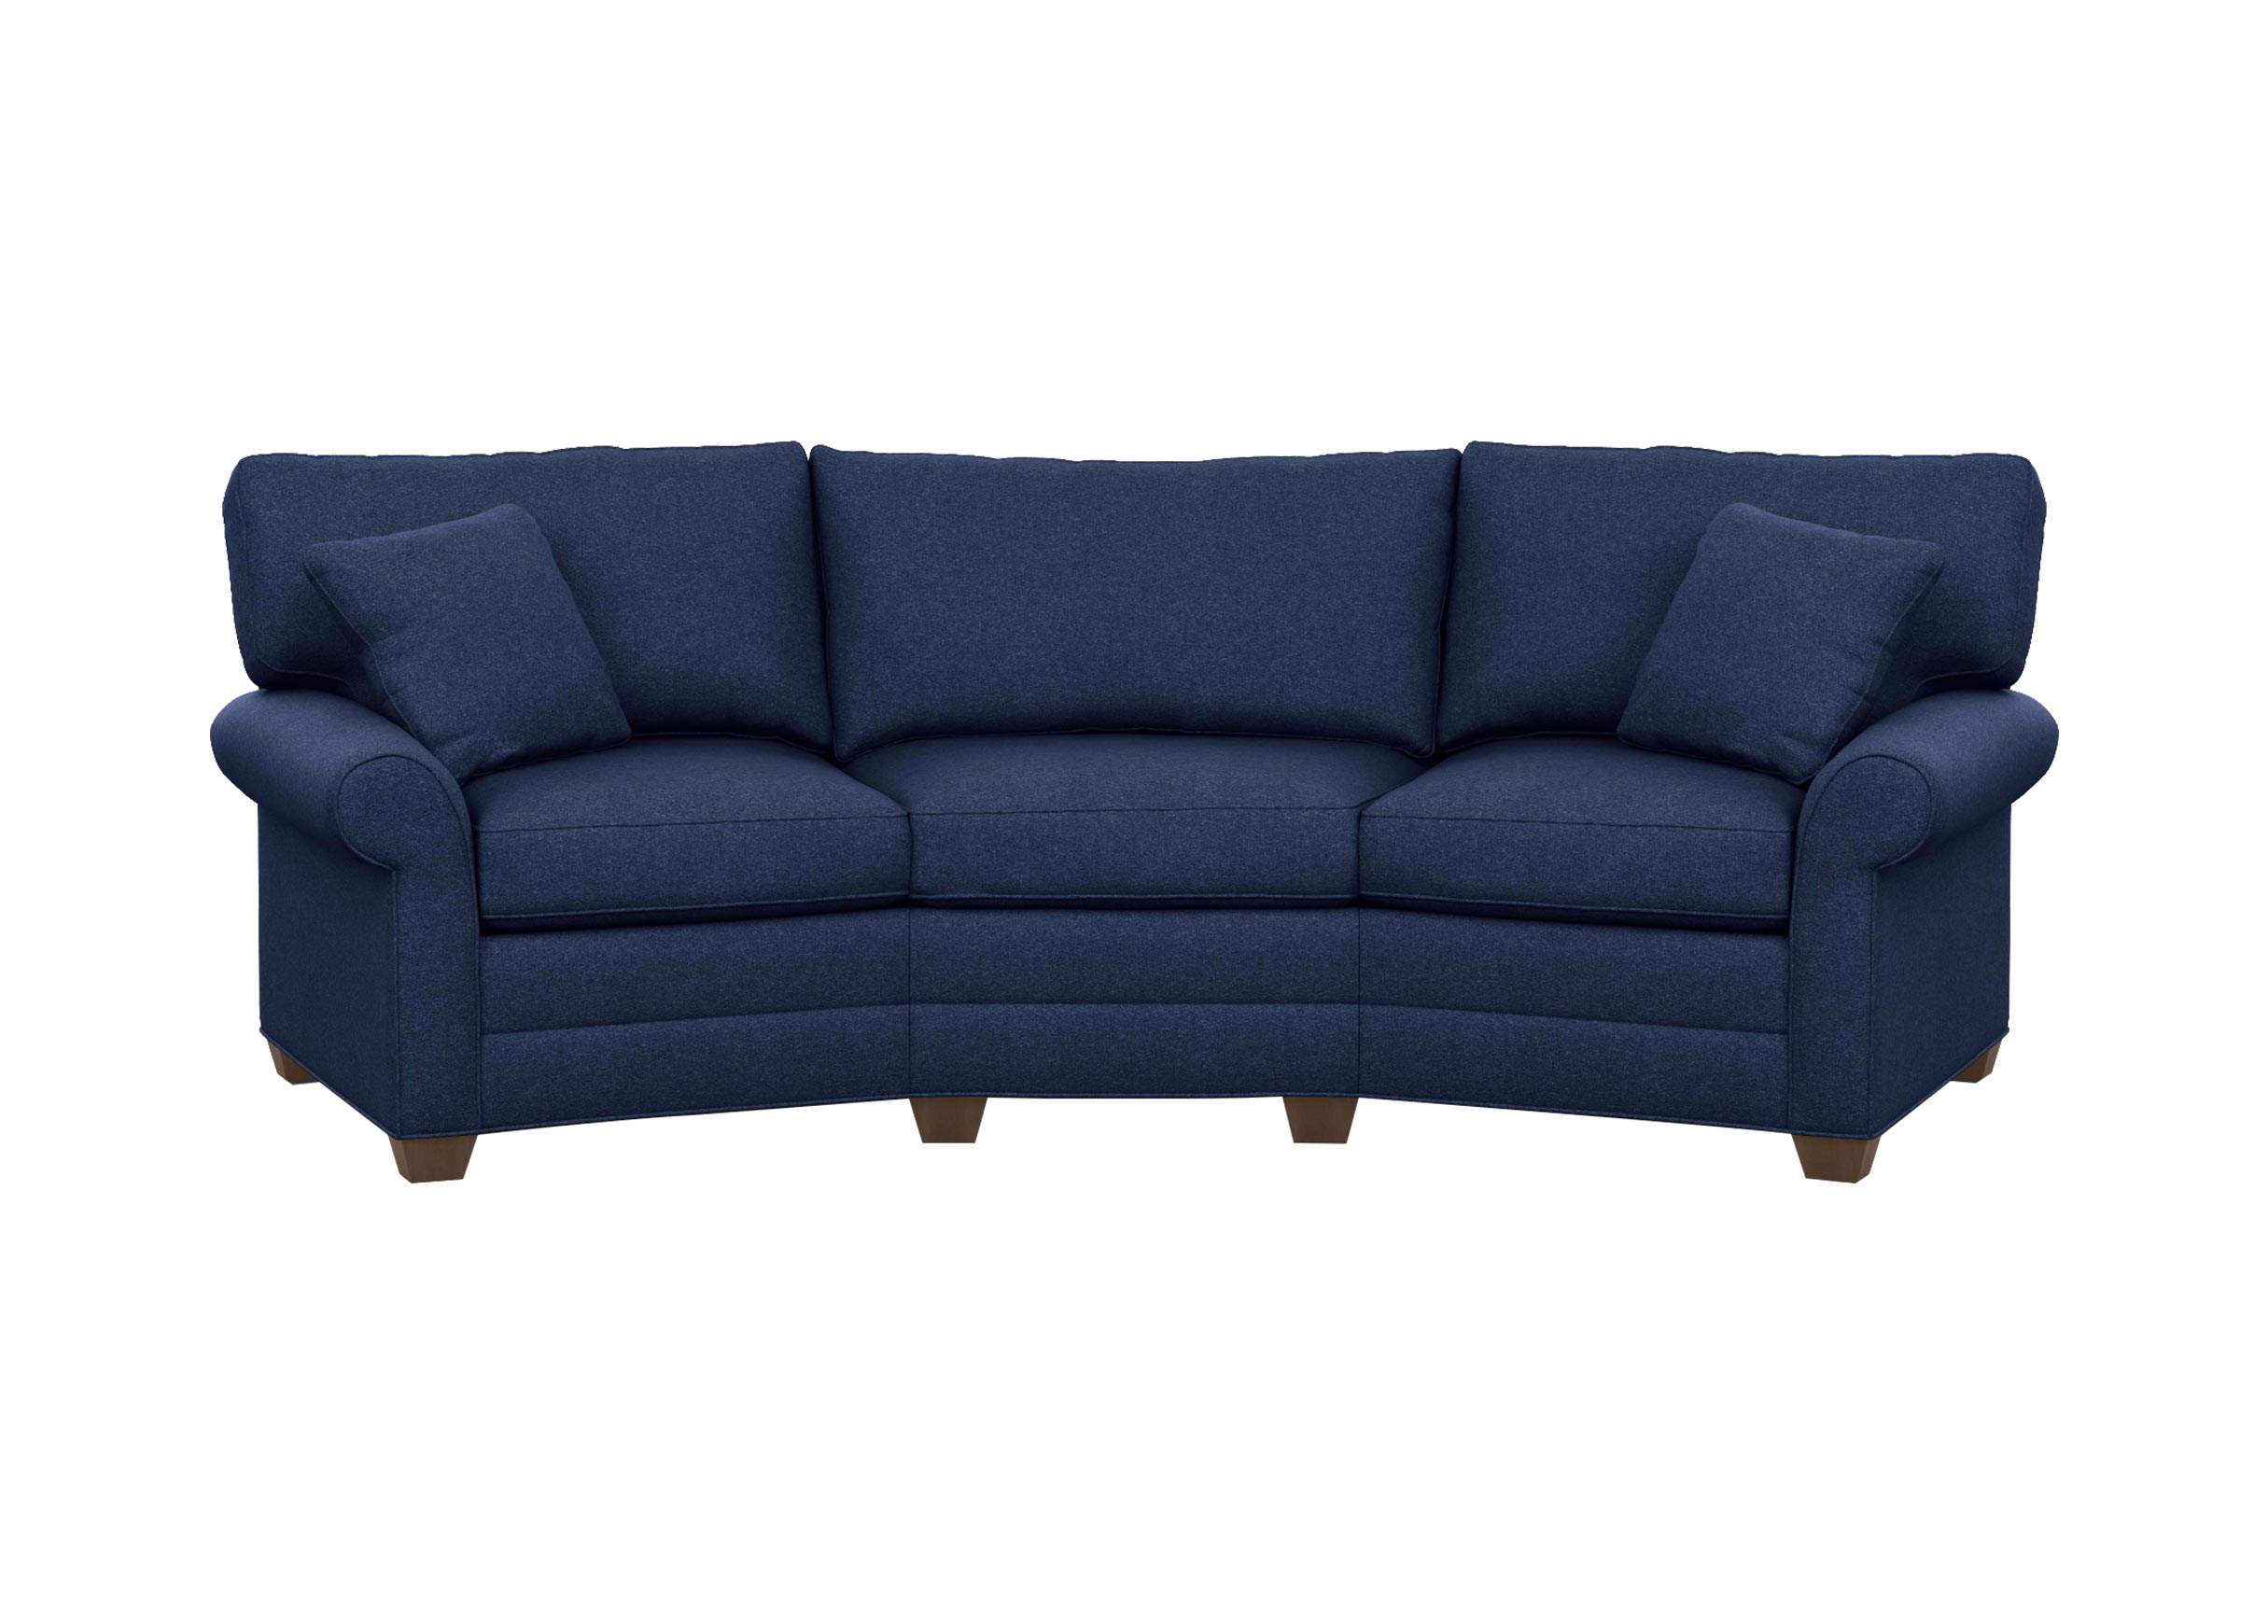 Bennett conversation sofa sofas loveseats ethan allen for Conversation sofa